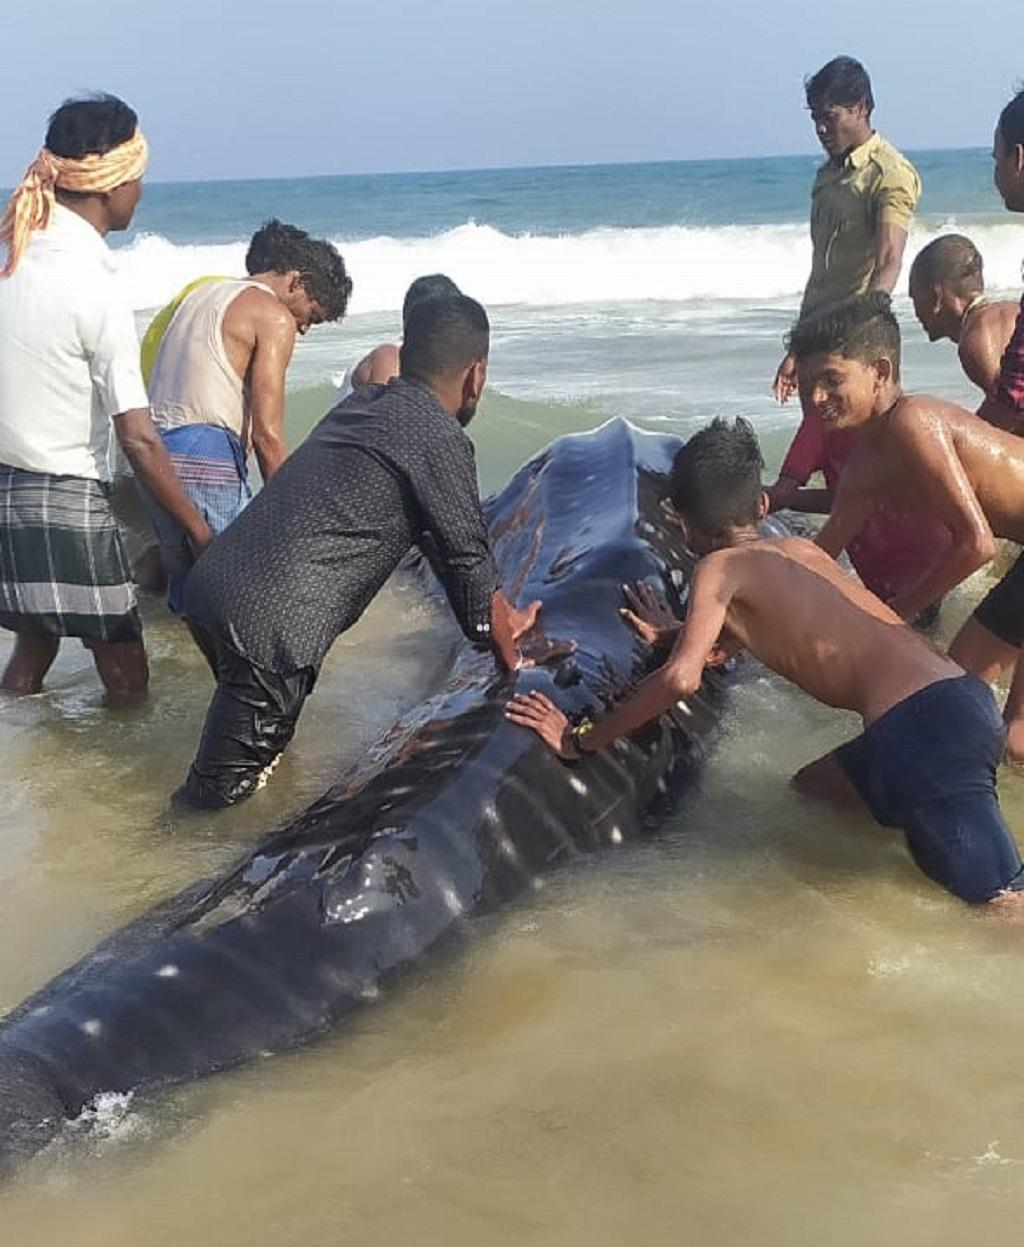 Whale shark found in Odisha's Ganjam, villagers release it into sea. Photo: Hrusikesh Mohanty